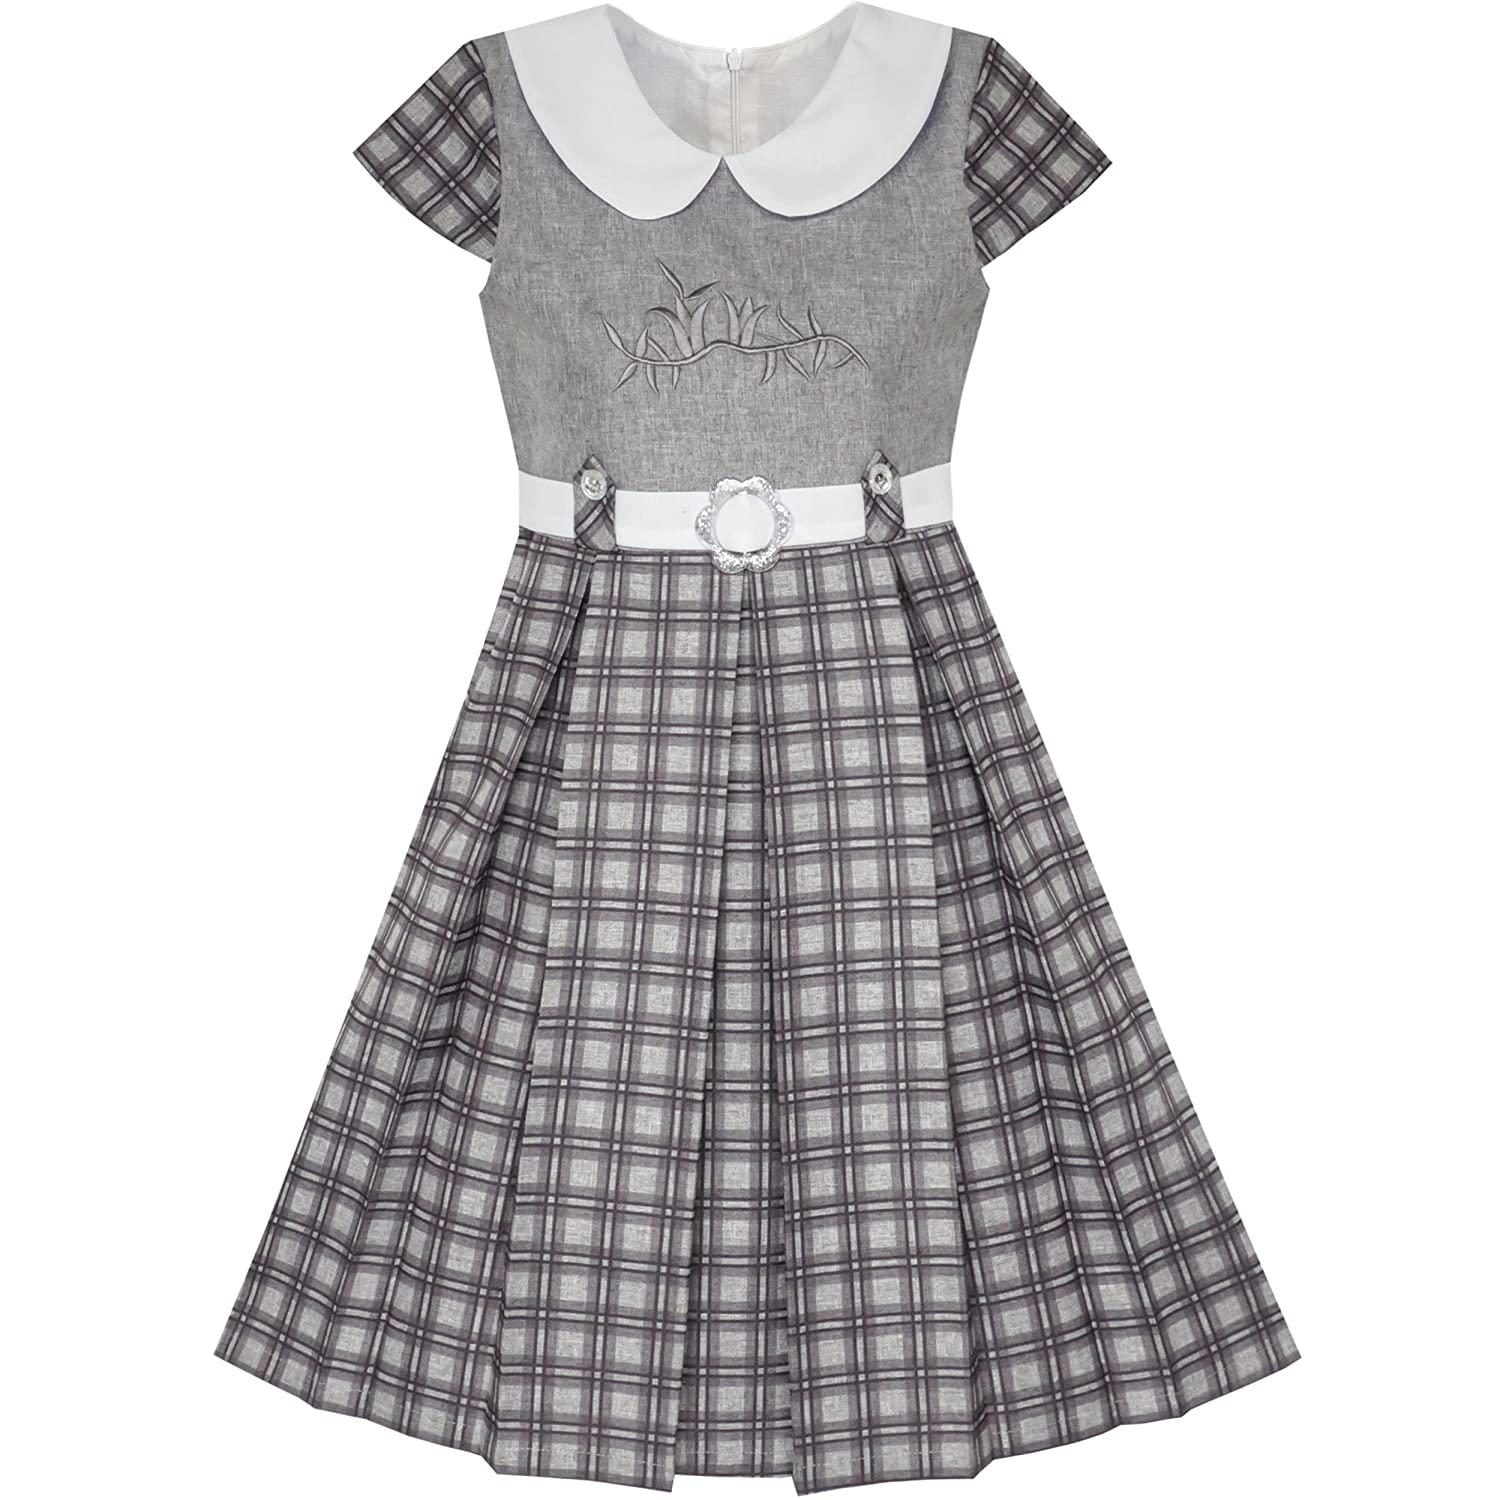 2179c96db2667 Girls\' dress size 4-14 suitable for age 4 to 14 years girls. Please read  detail size measurement ...